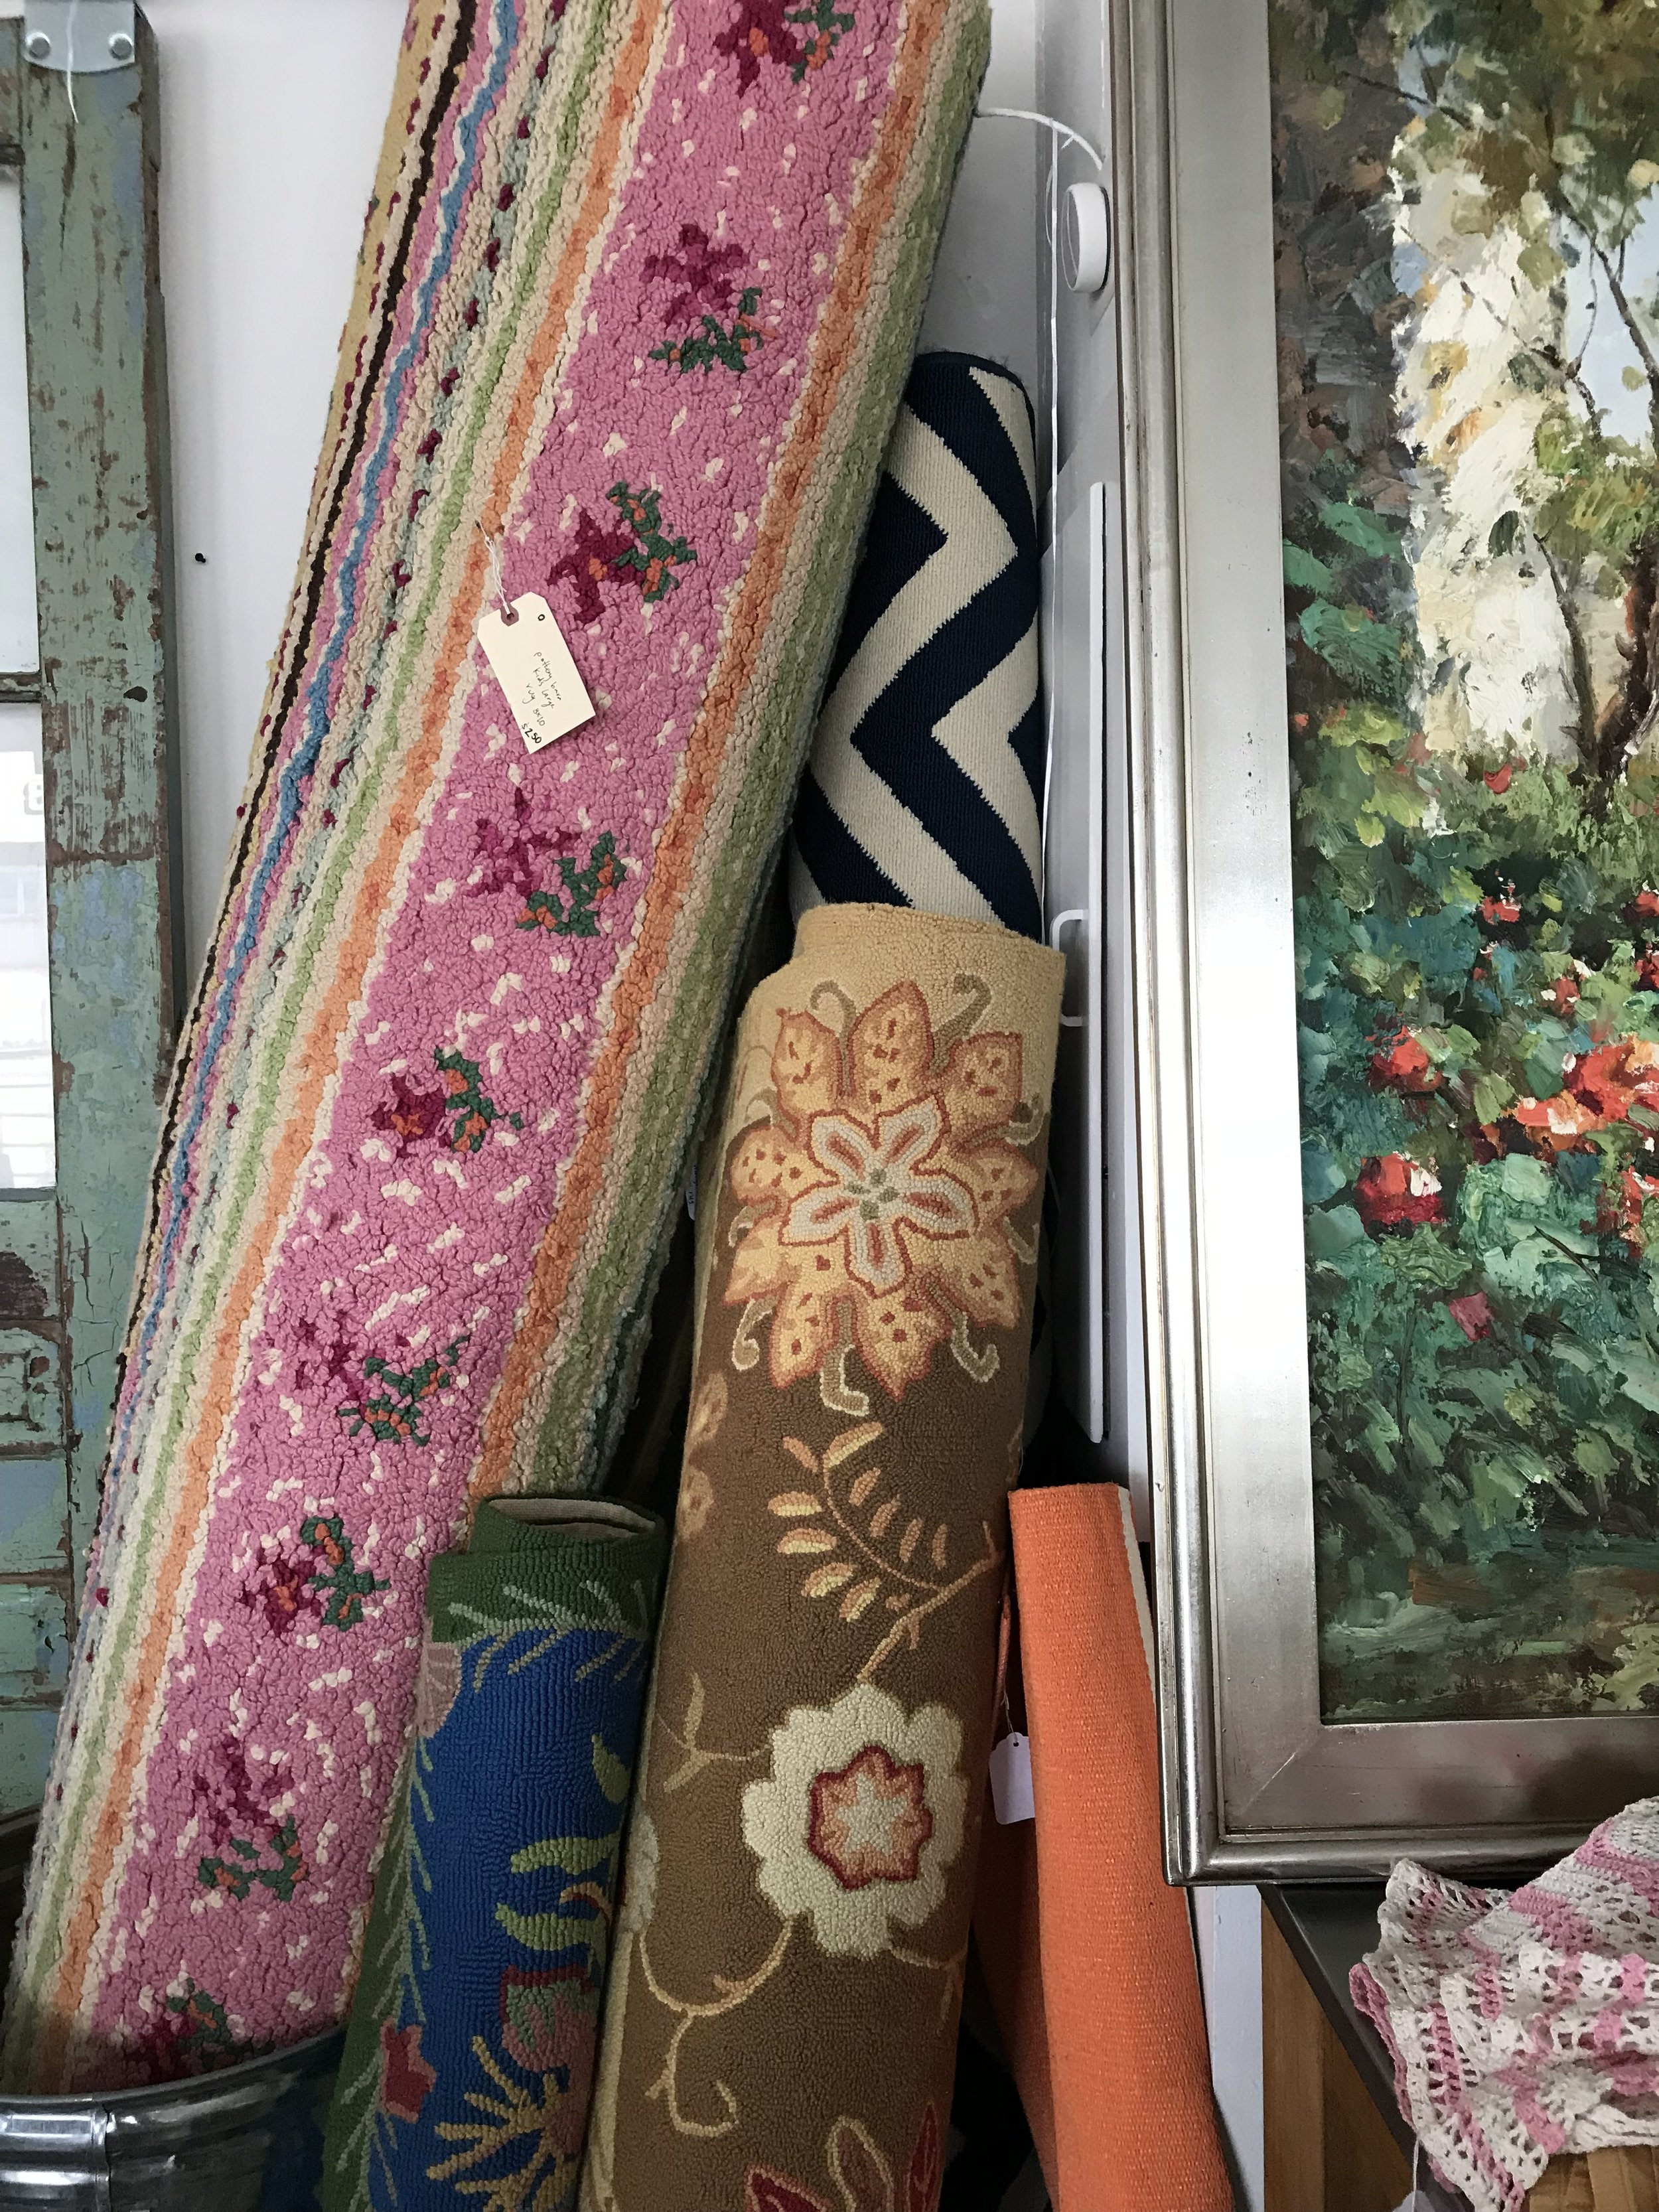 Rugs on Rugs on Rugs (we have even more than what you see in the picture!)